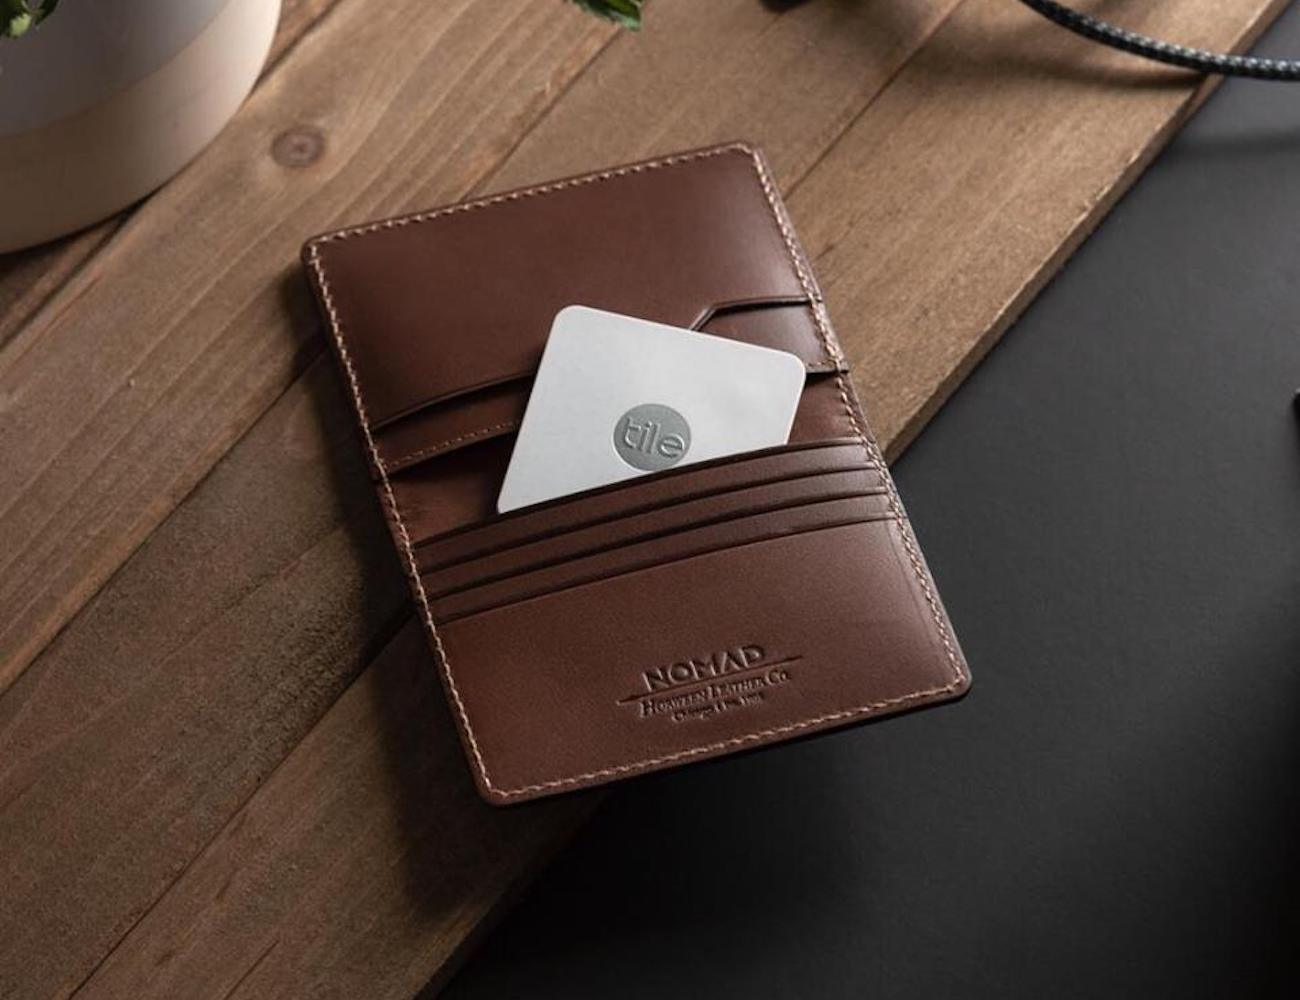 Nomad Tile Slim Tracking Wallet adds intelligence to style